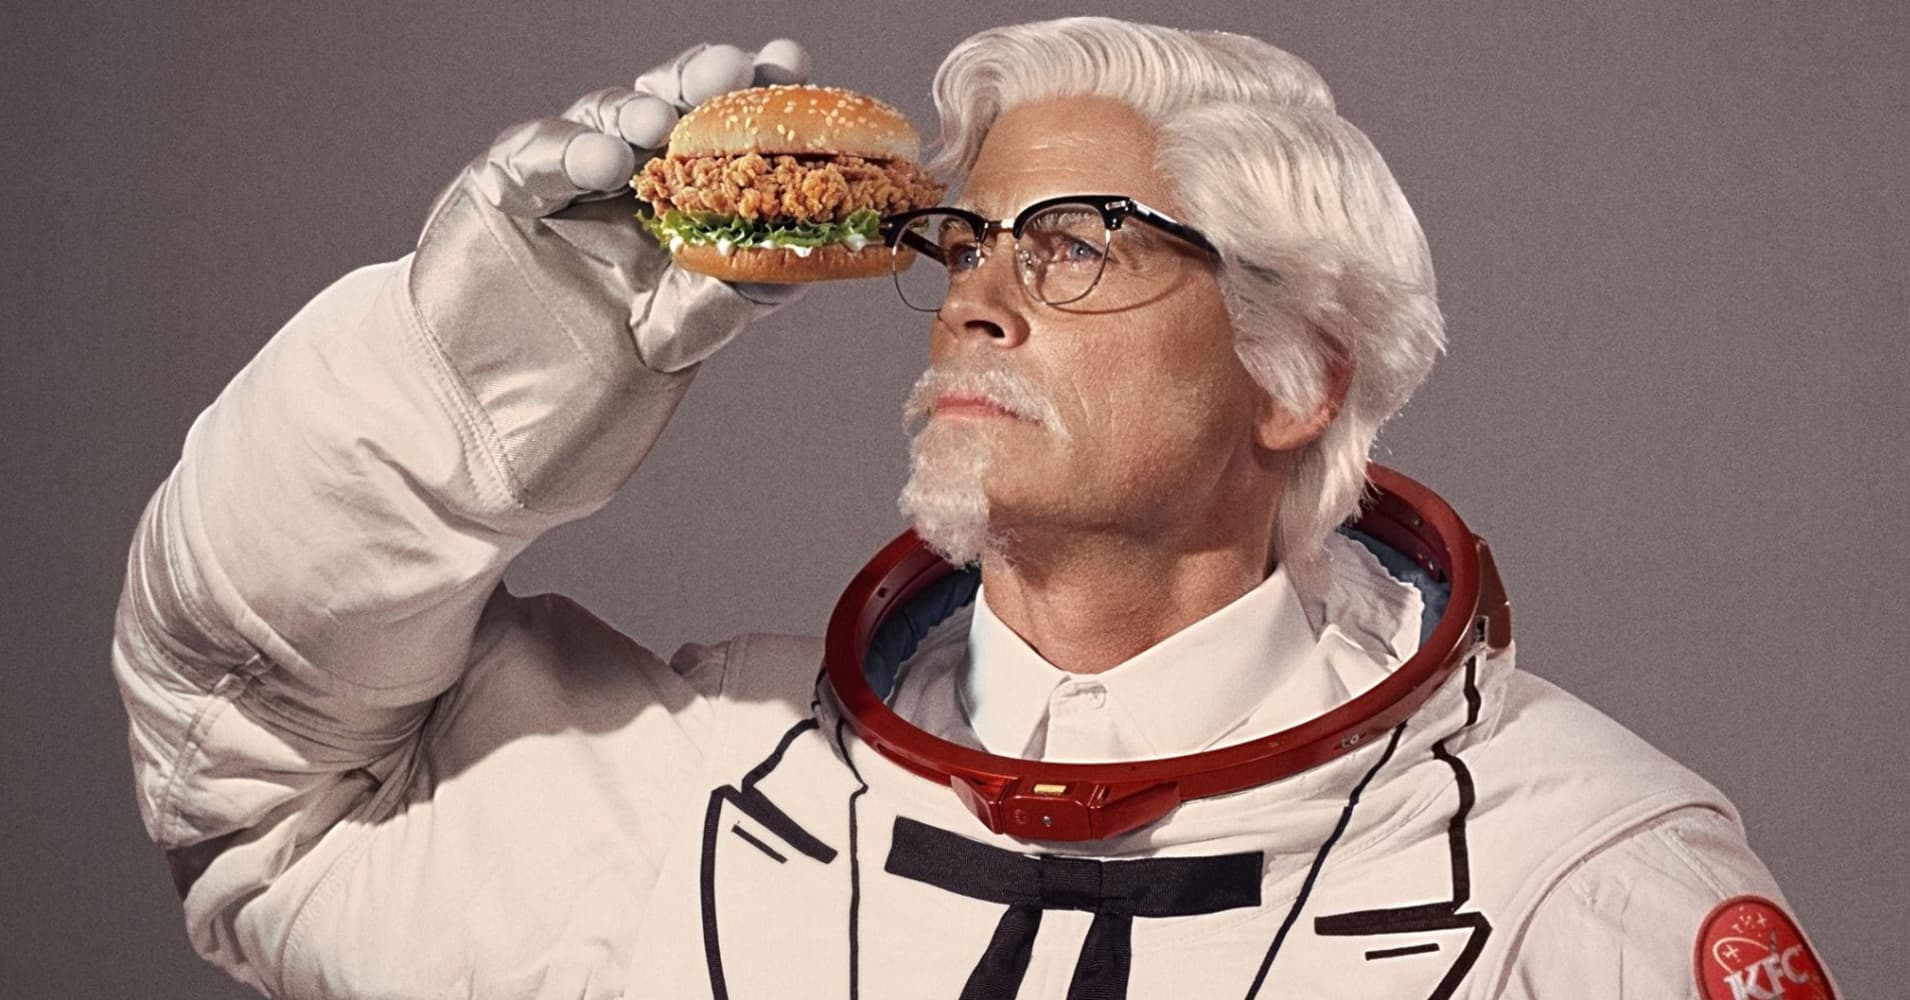 The science behind KFC's plan to launch a chicken sandwich into space